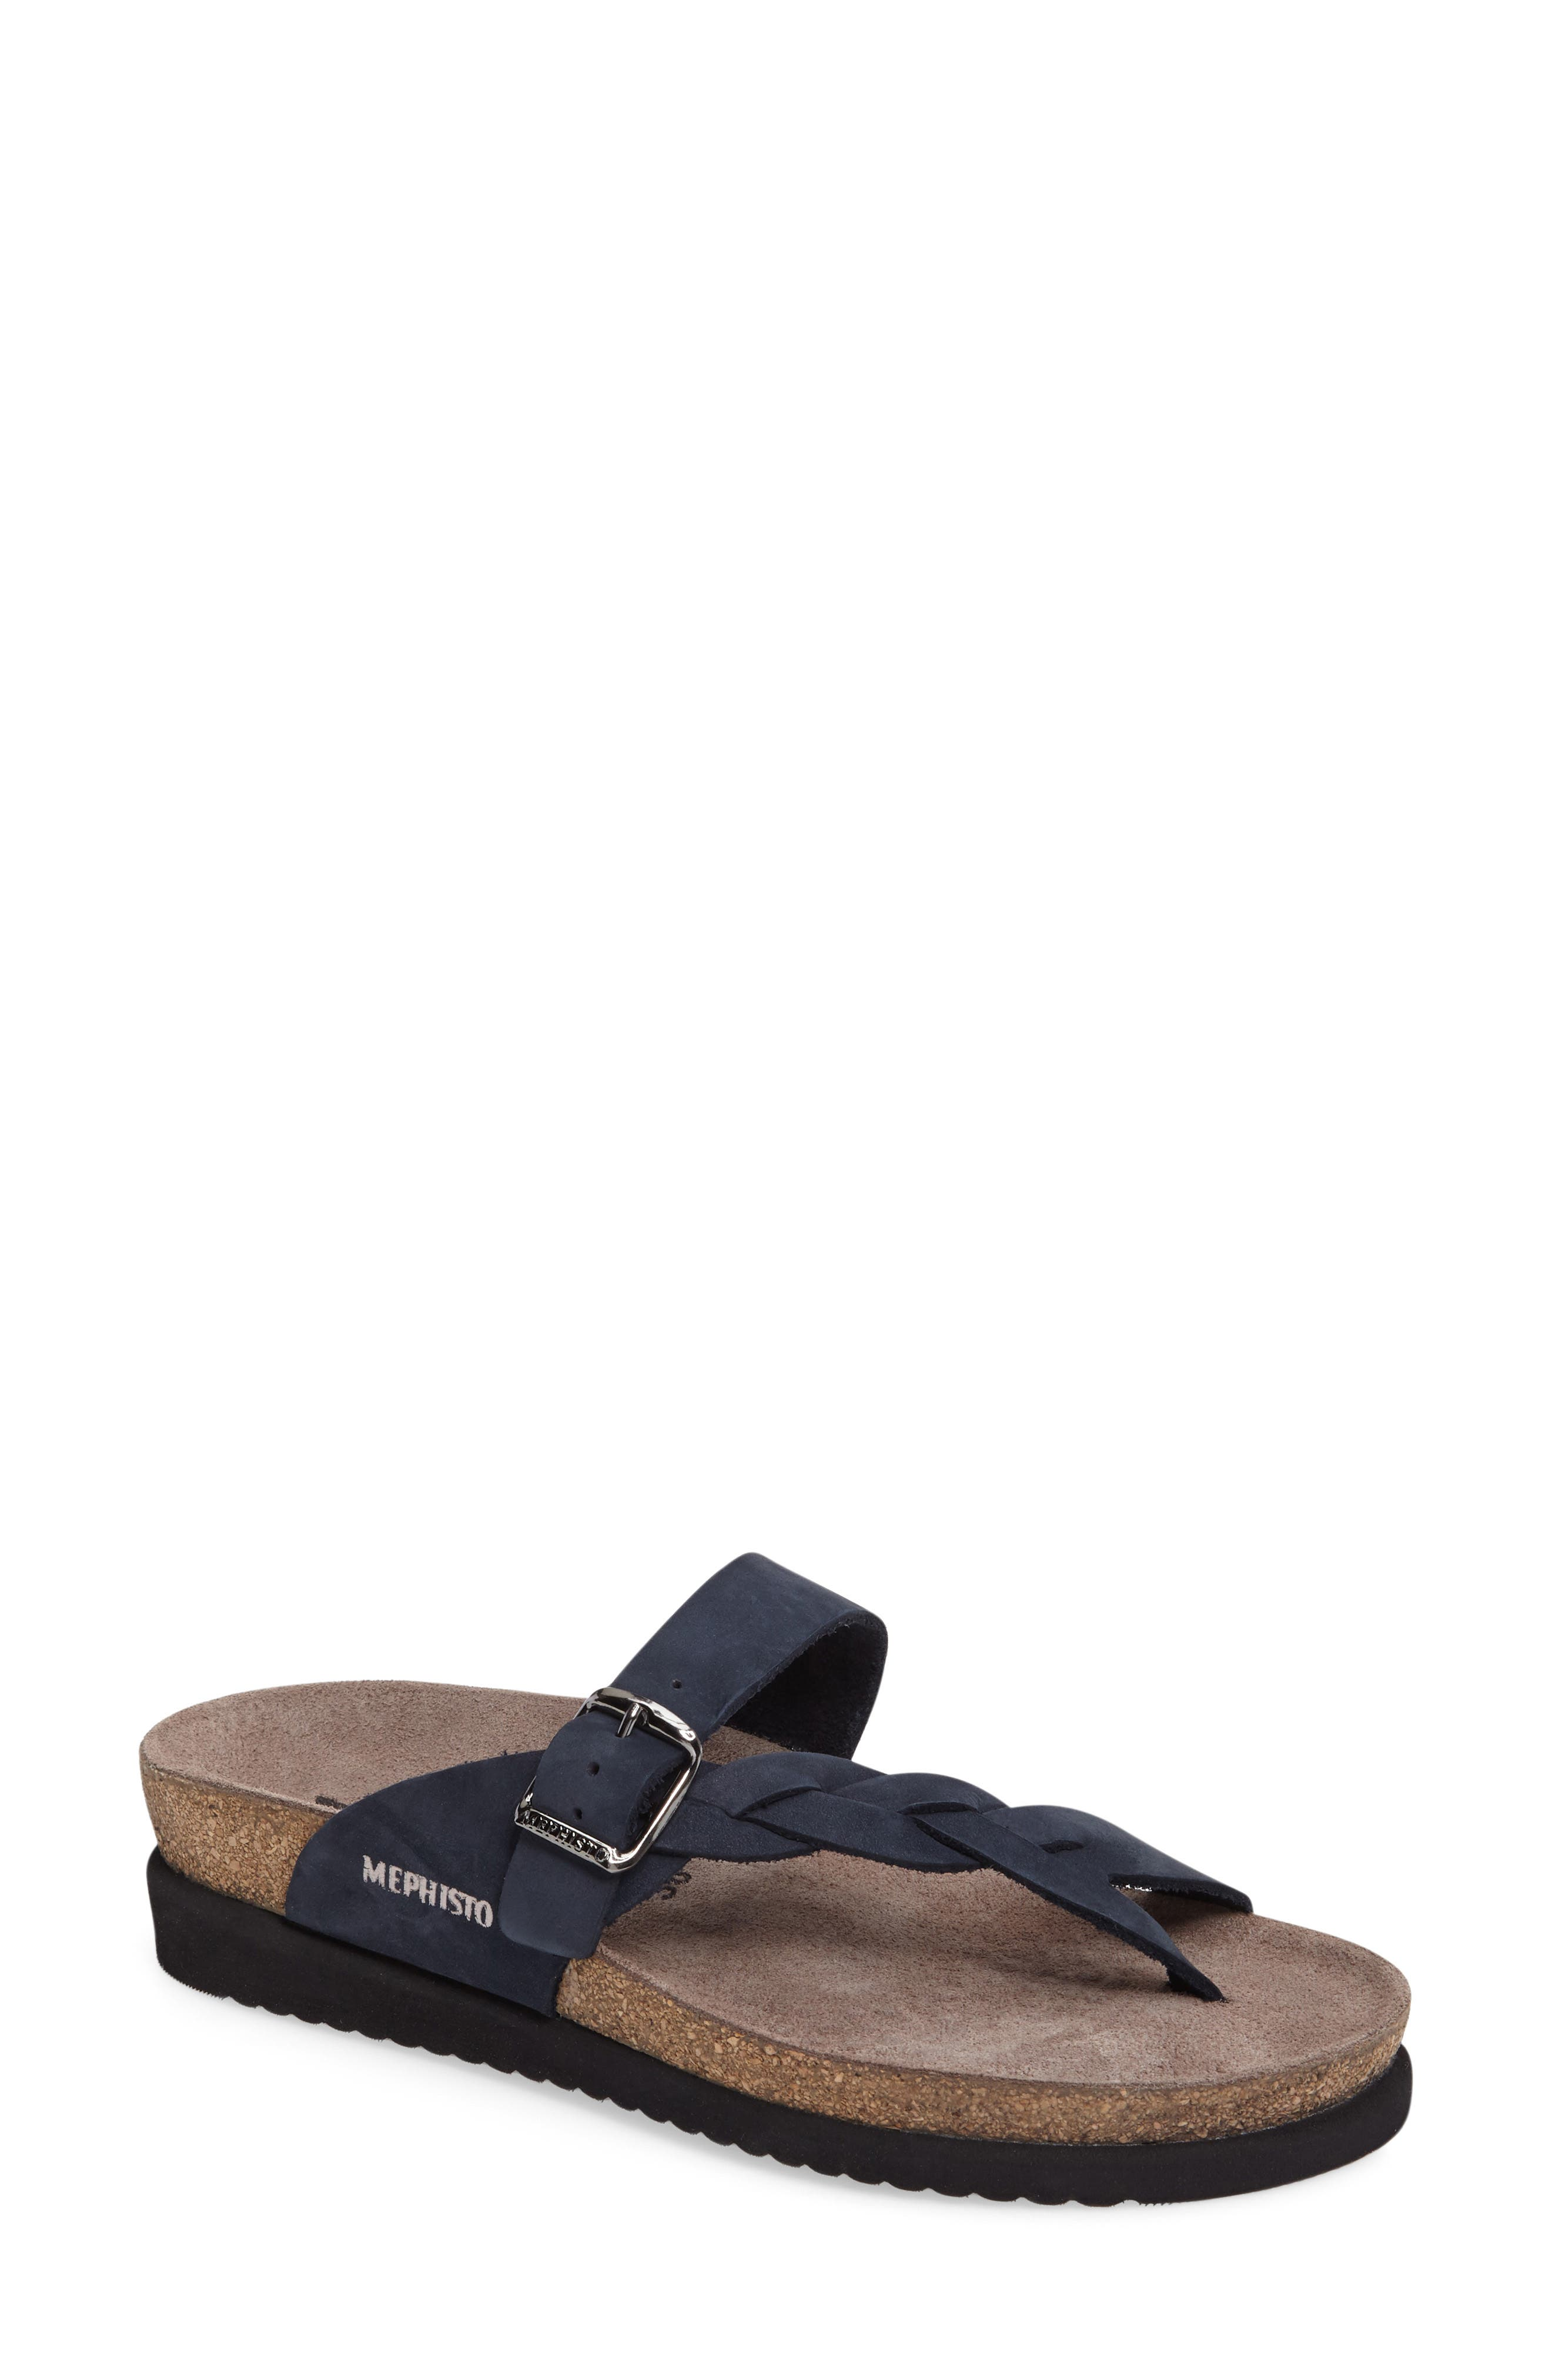 Mephisto 'Helen Twist' Nubuck Leather Sandal (Women)